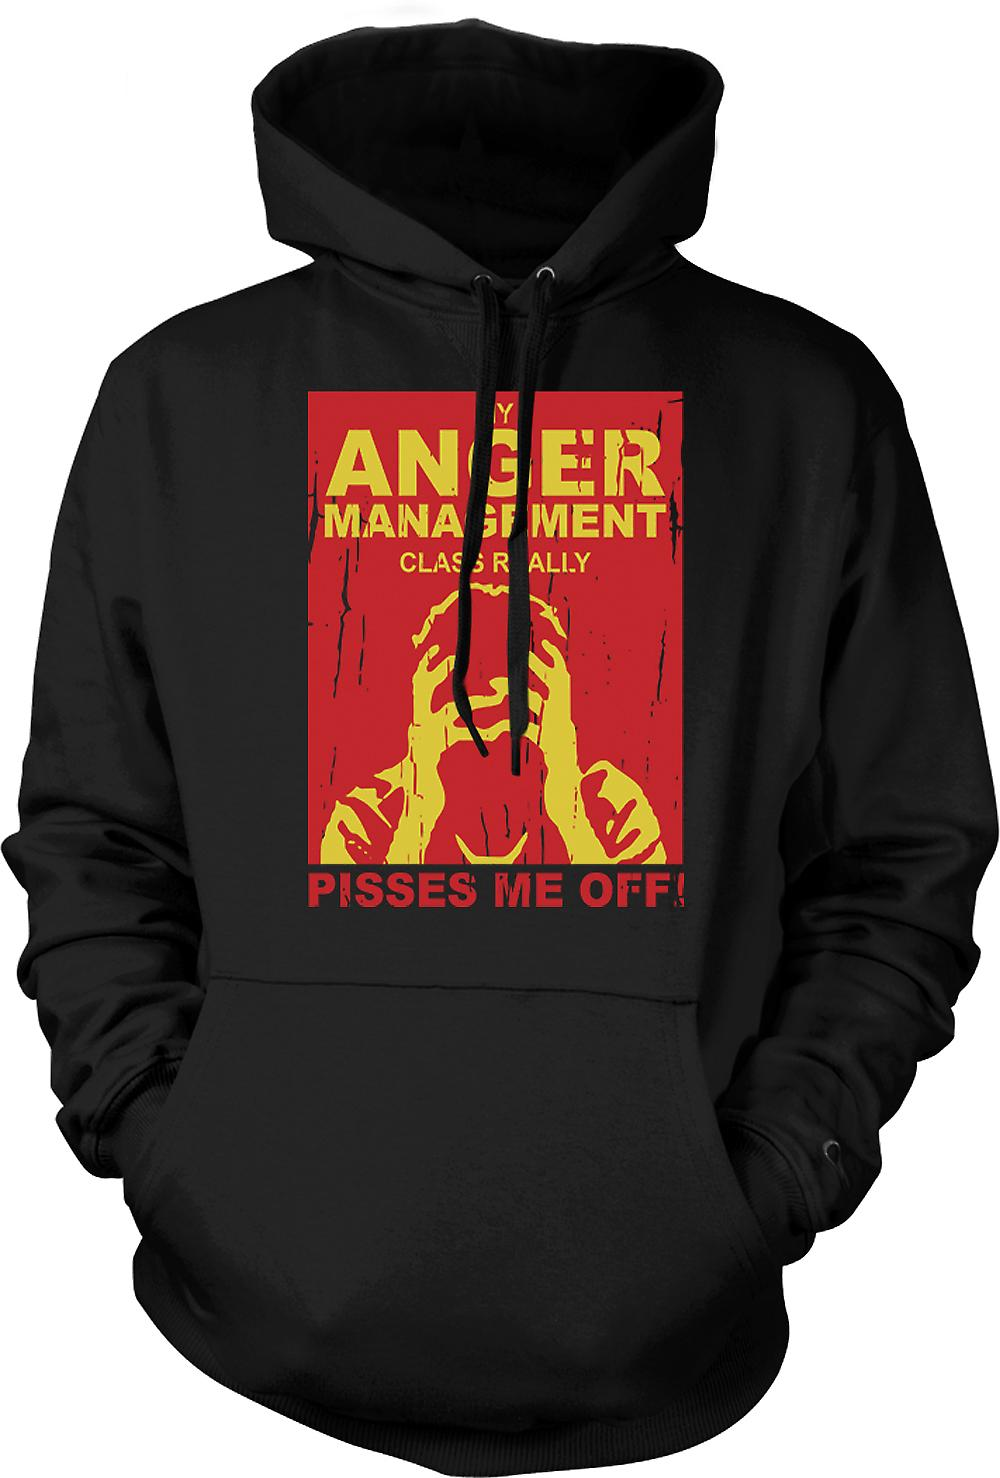 Mens Hoodie - My Anger Management Class Really Pisses Me Off